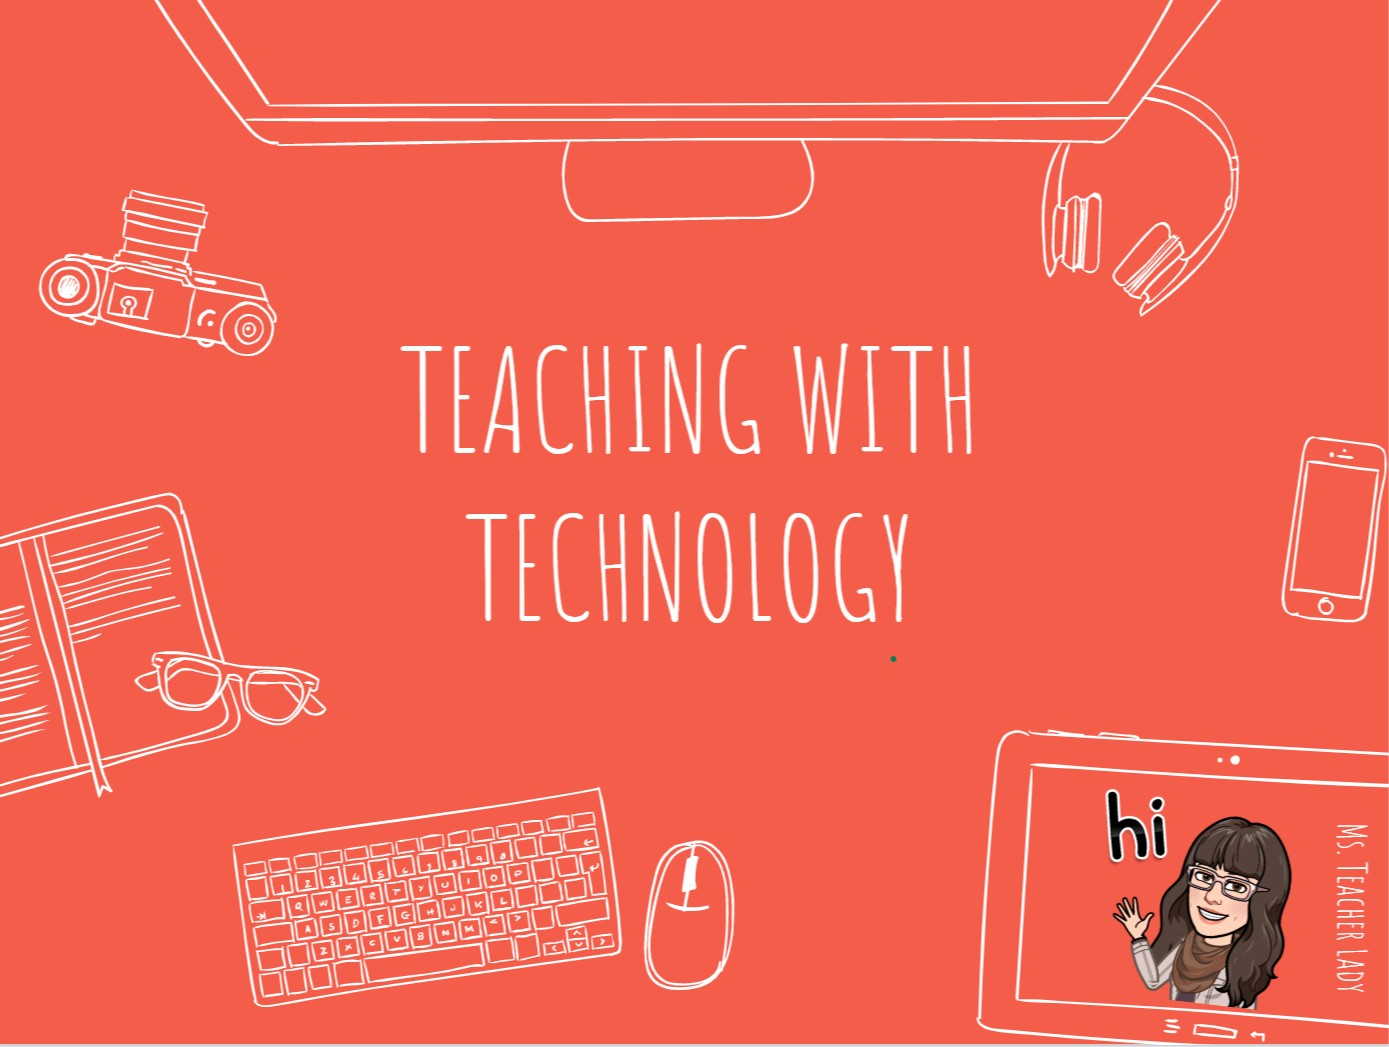 Teaching with Technology - Master Thesis